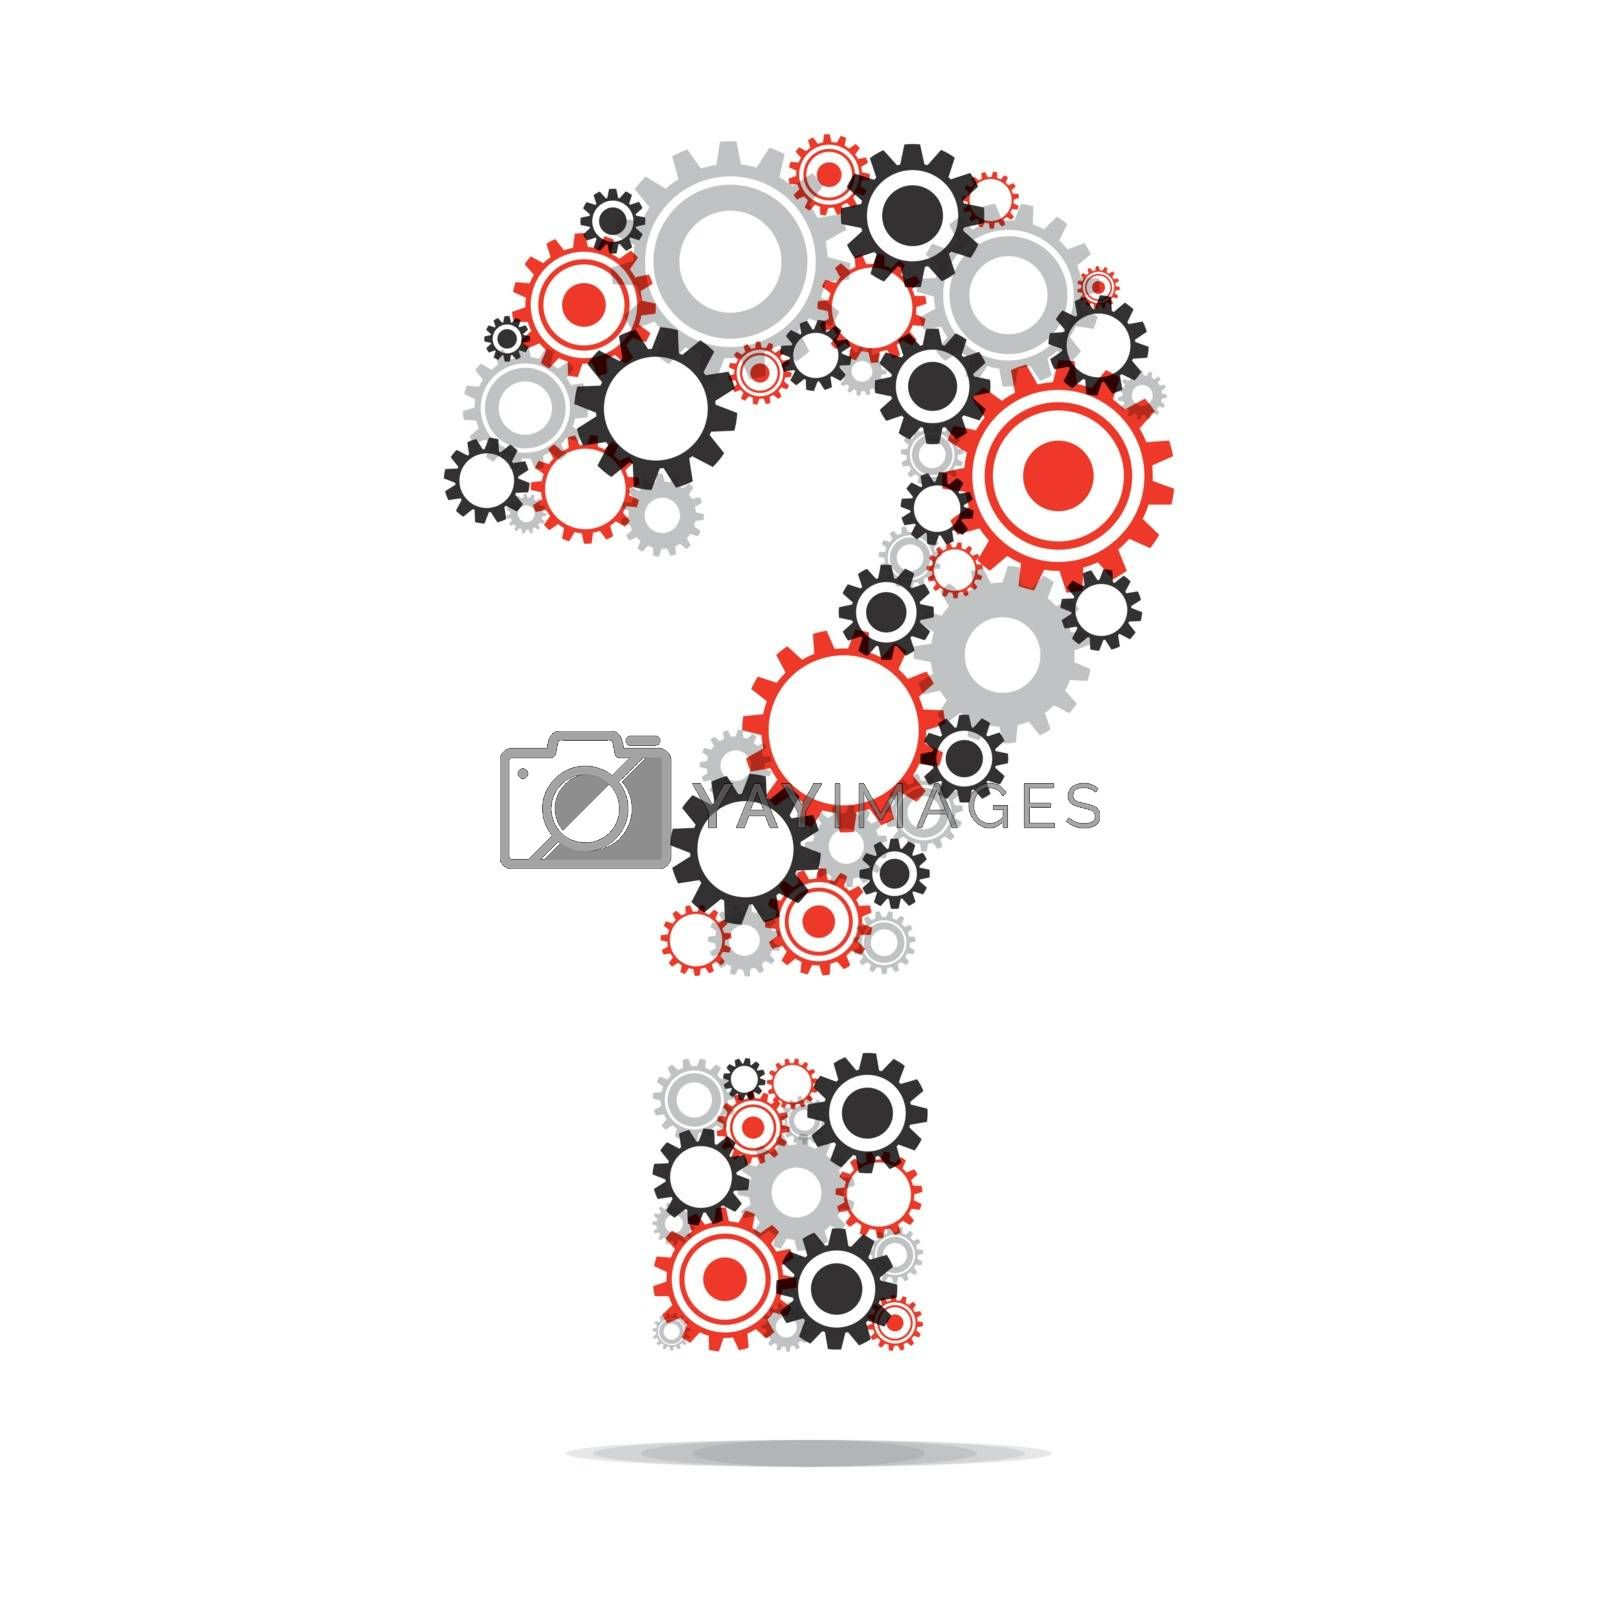 Royalty free image of Question Mark by nicousnake